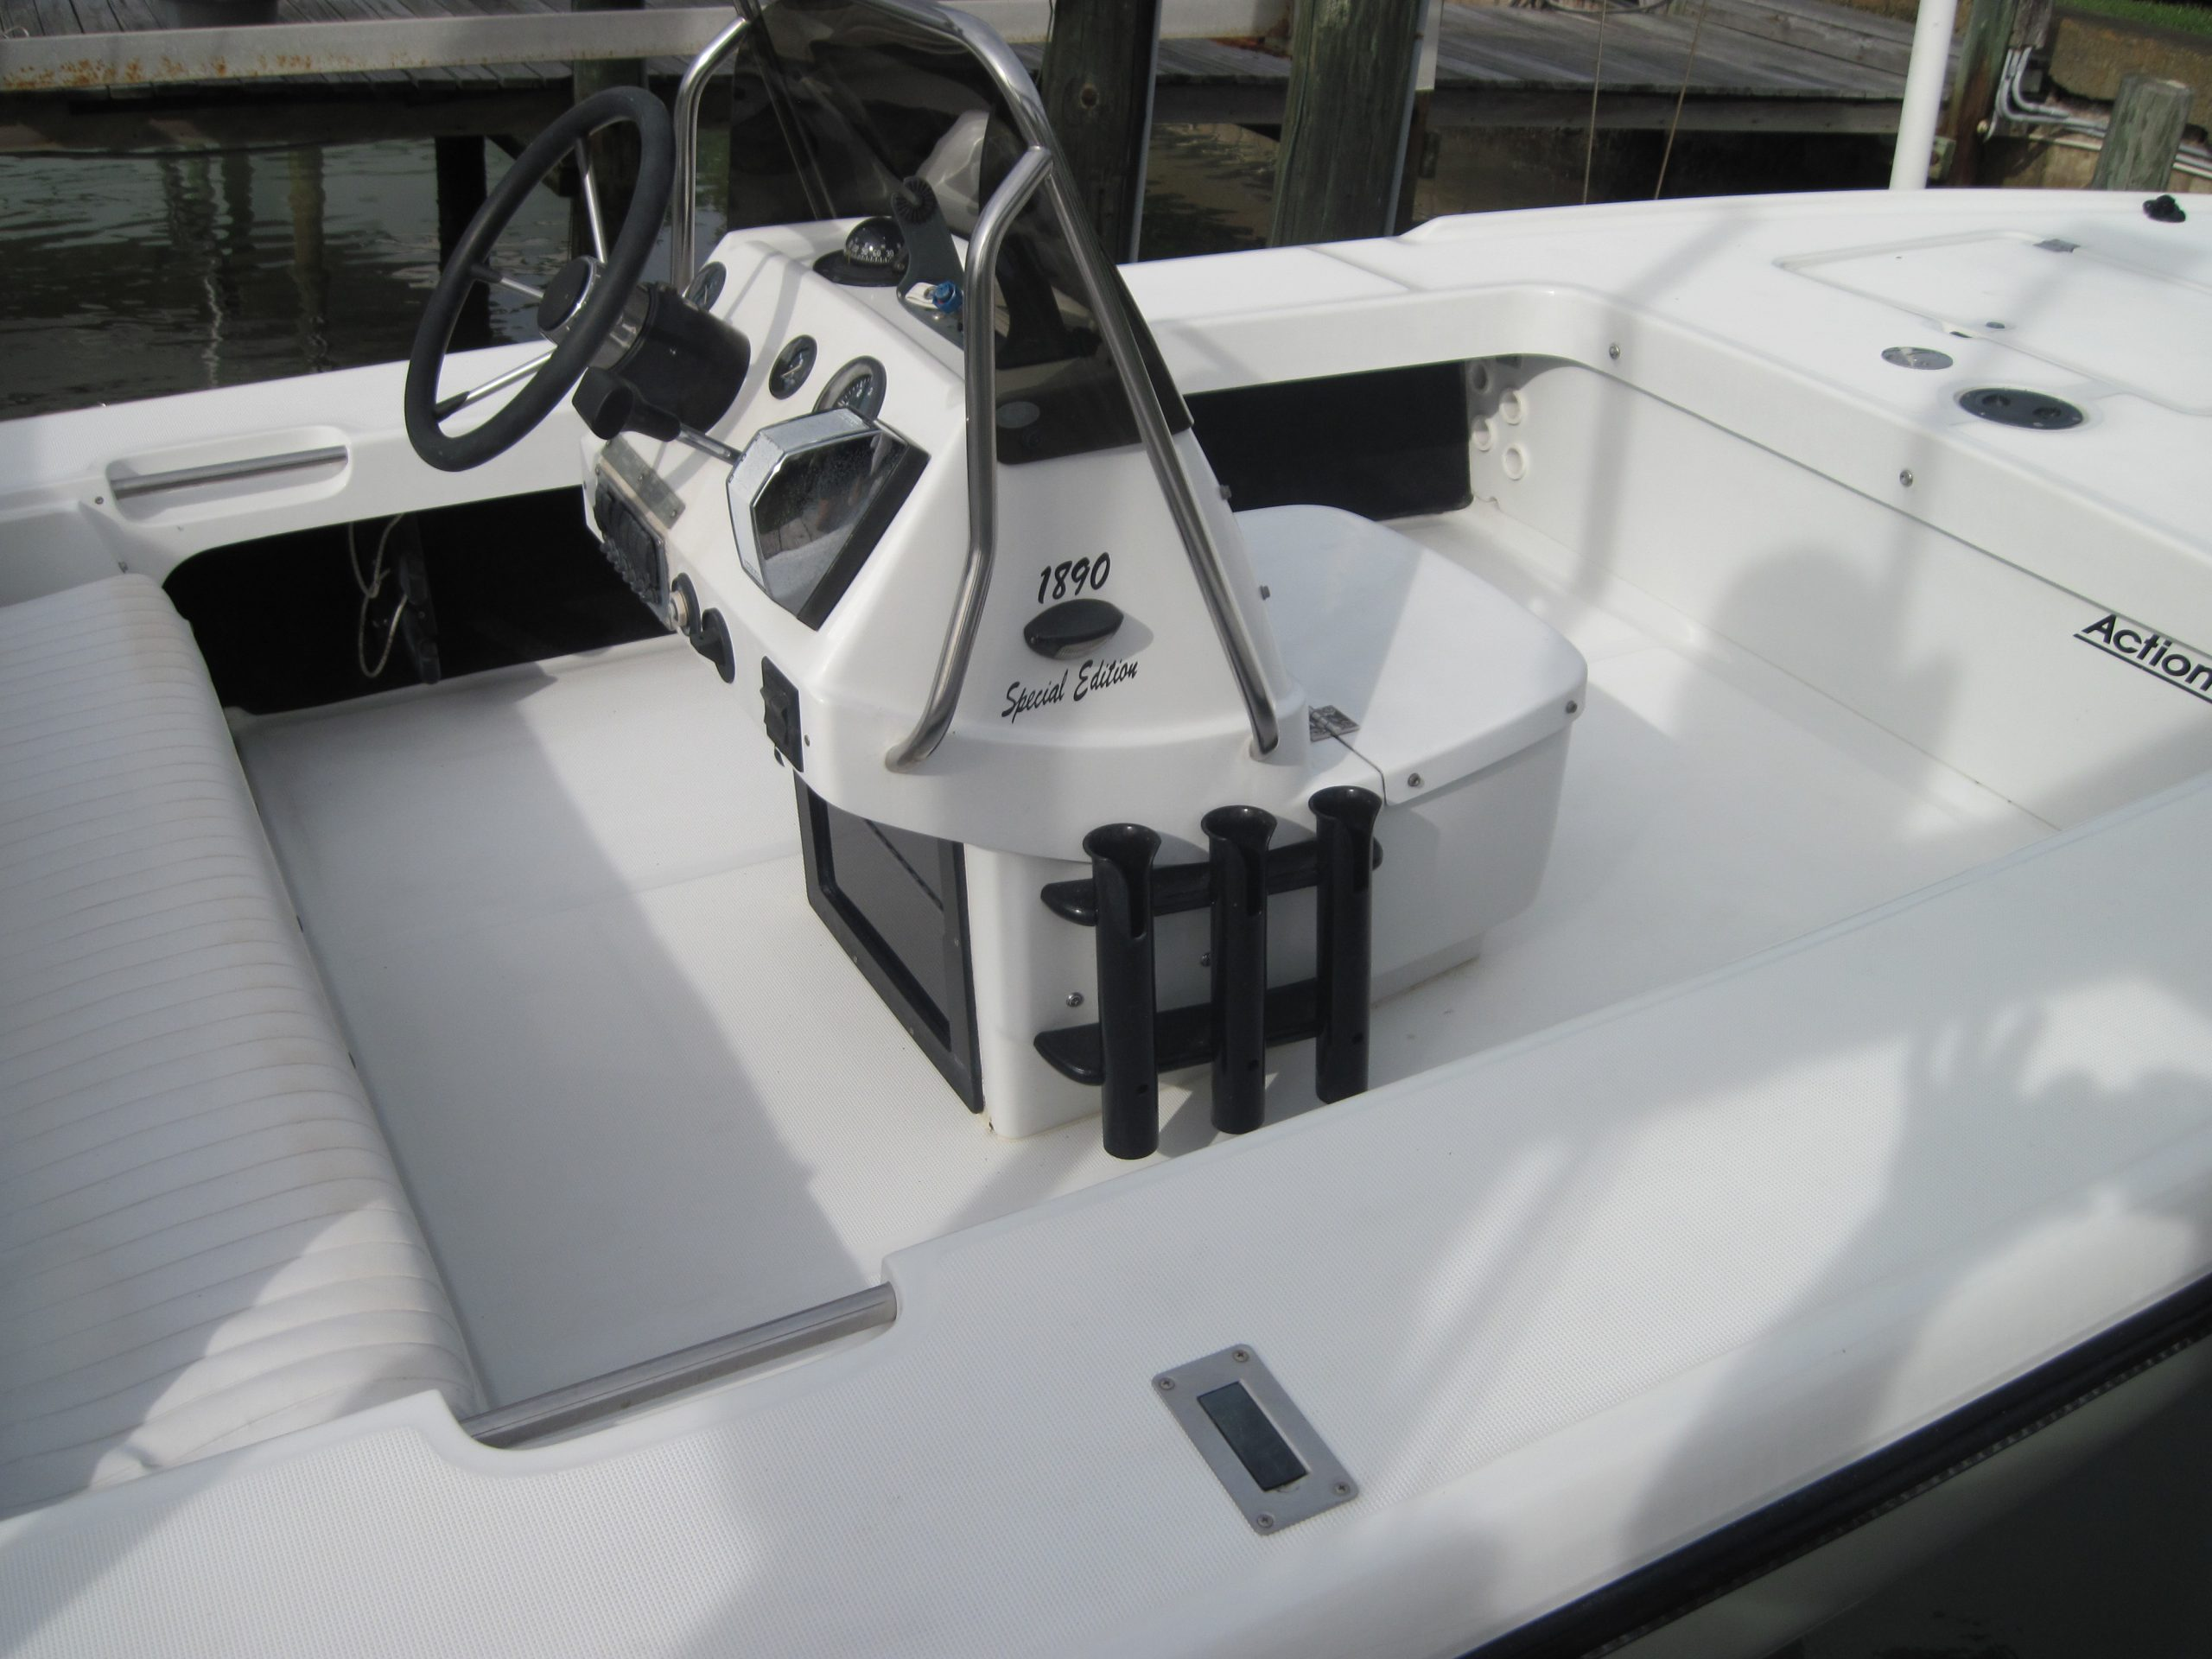 Boat Detailing, Clearwater, Fl